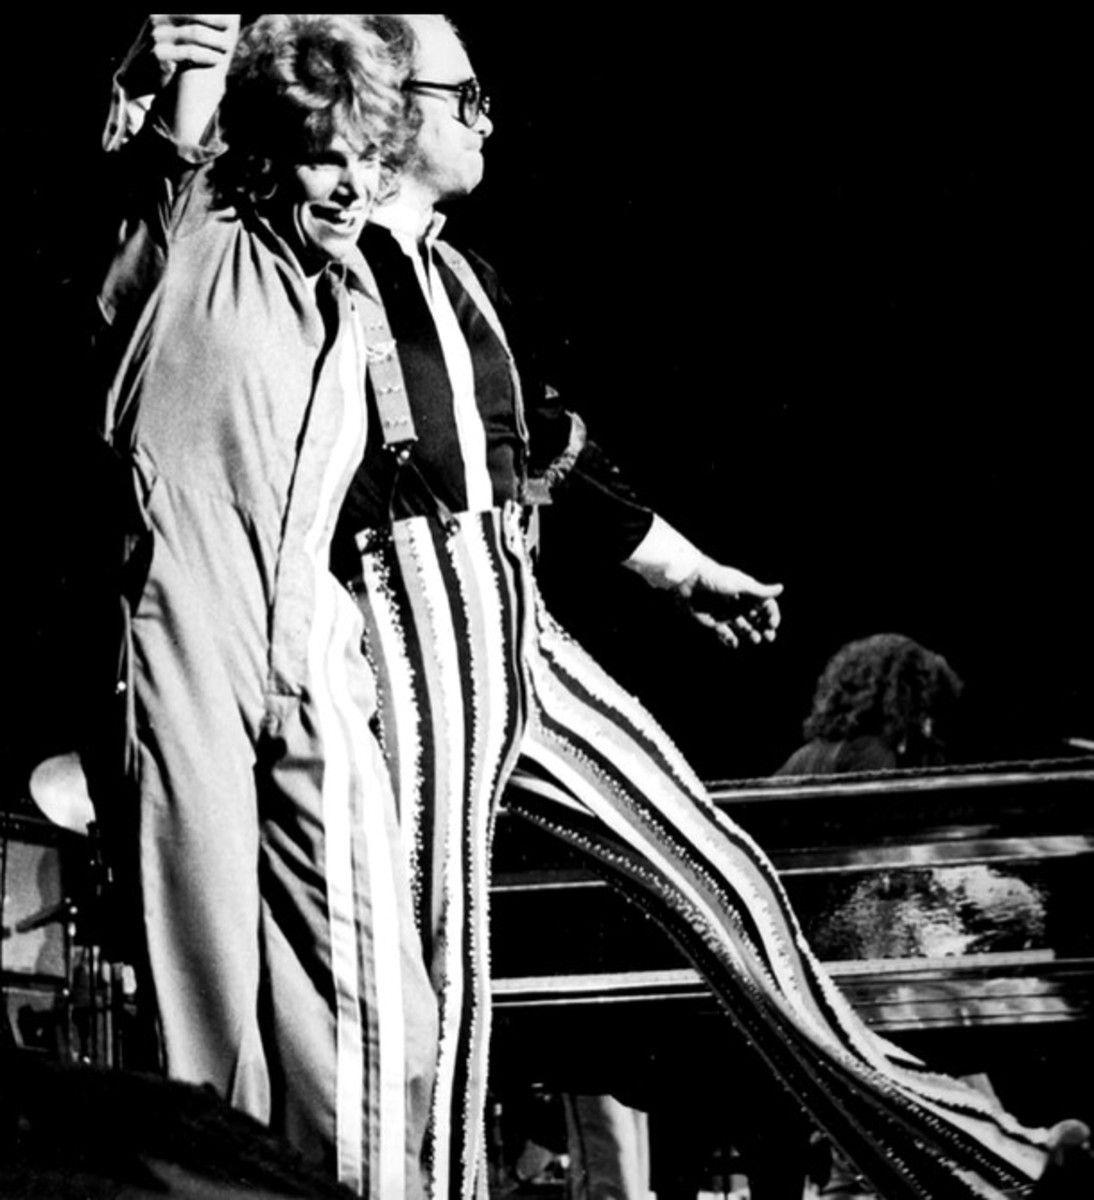 With Elton John, Rock of the Westies Tour, 1975-1976, The Gender Line documentary